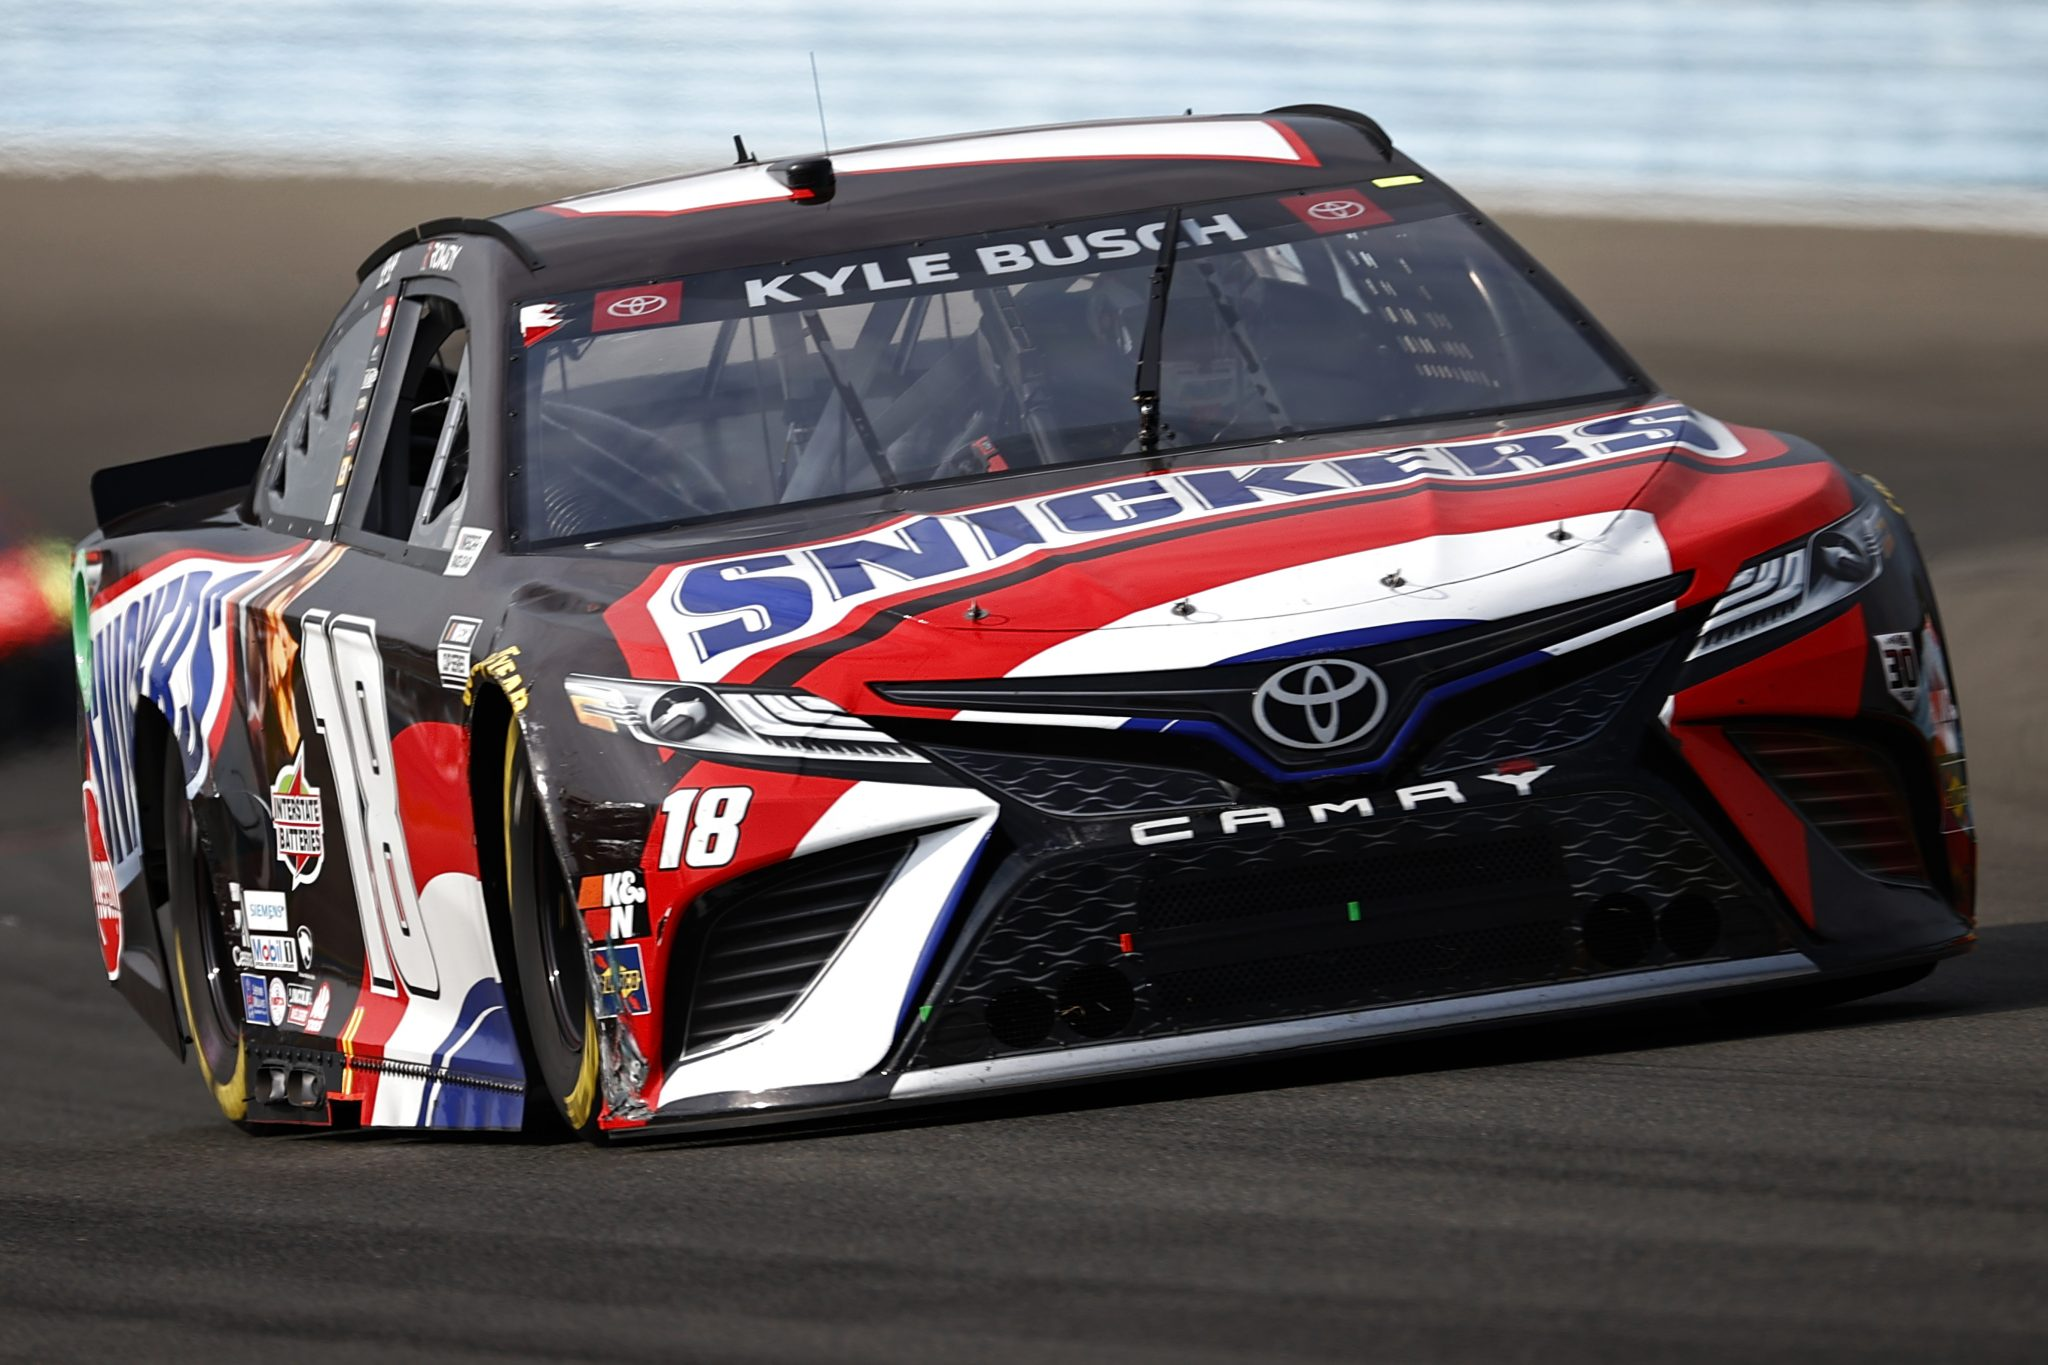 WATKINS GLEN, NEW YORK - AUGUST 08: Kyle Busch, driver of the #18 Snickers Toyota, drives during the NASCAR Cup Series Go Bowling at The Glen at Watkins Glen International on August 08, 2021 in Watkins Glen, New York. (Photo by Jared C. Tilton/Getty Images) | Getty Images